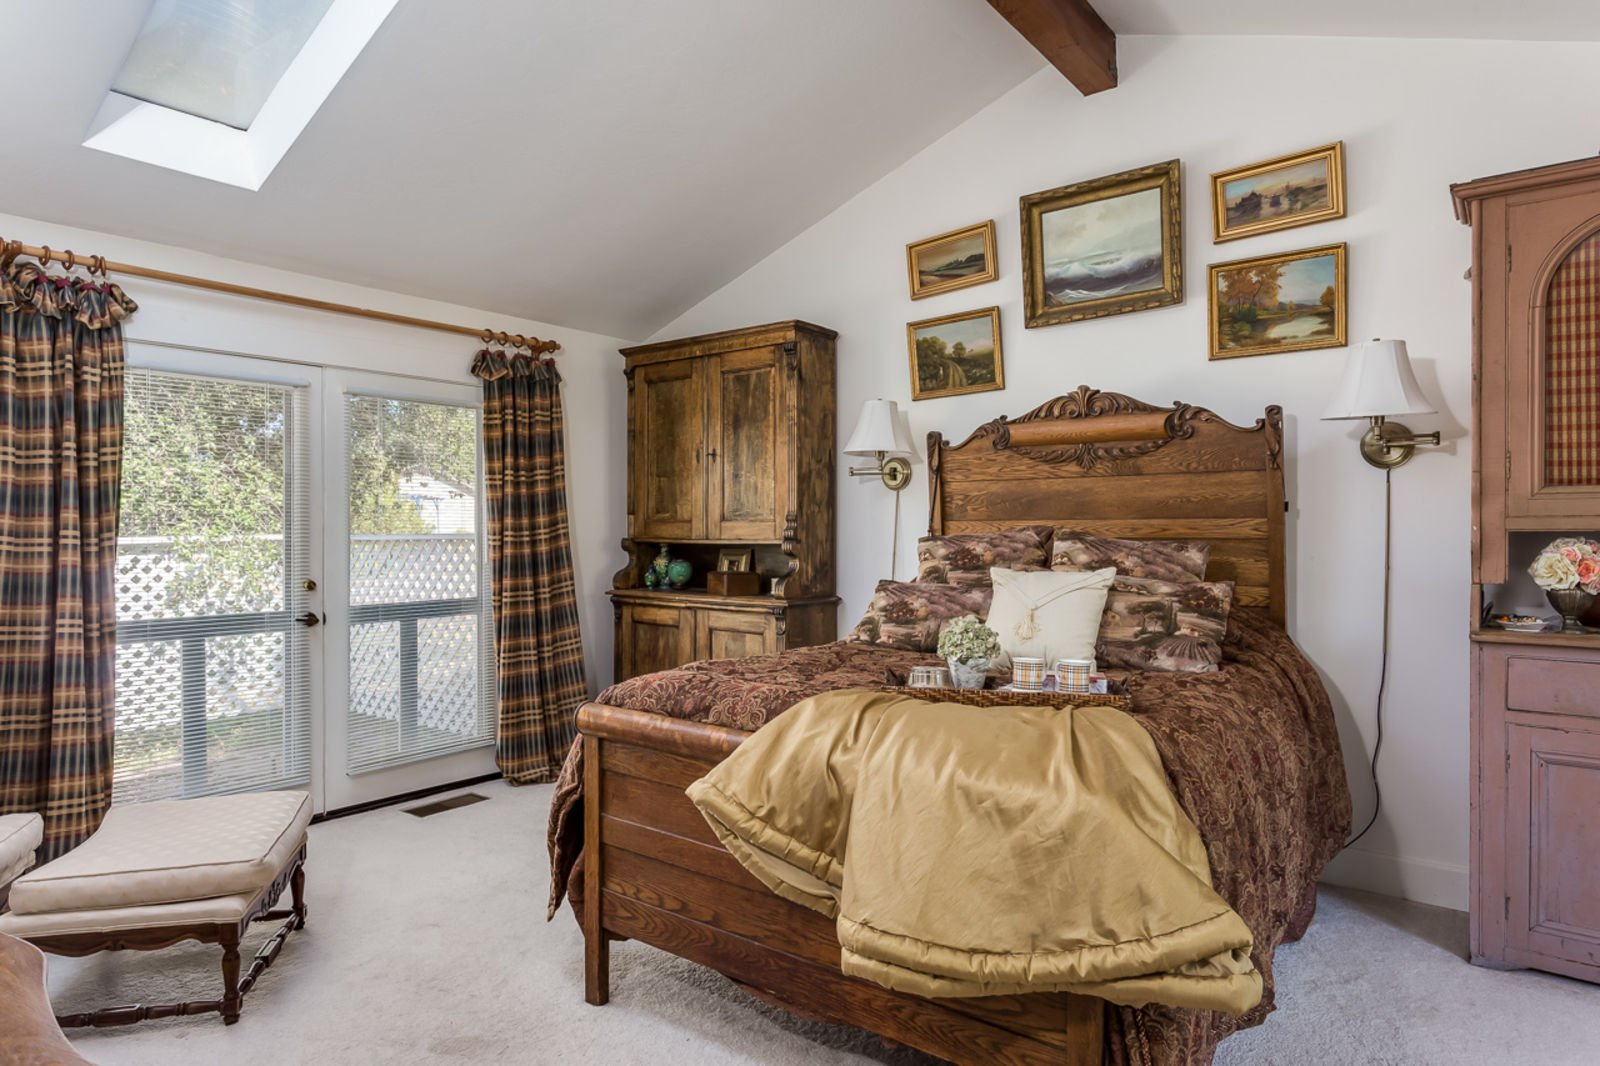 Adobe home on Fruitvale RD Valley Center CA -Master Bedroom has two sets of french doors opening to patio and gardens